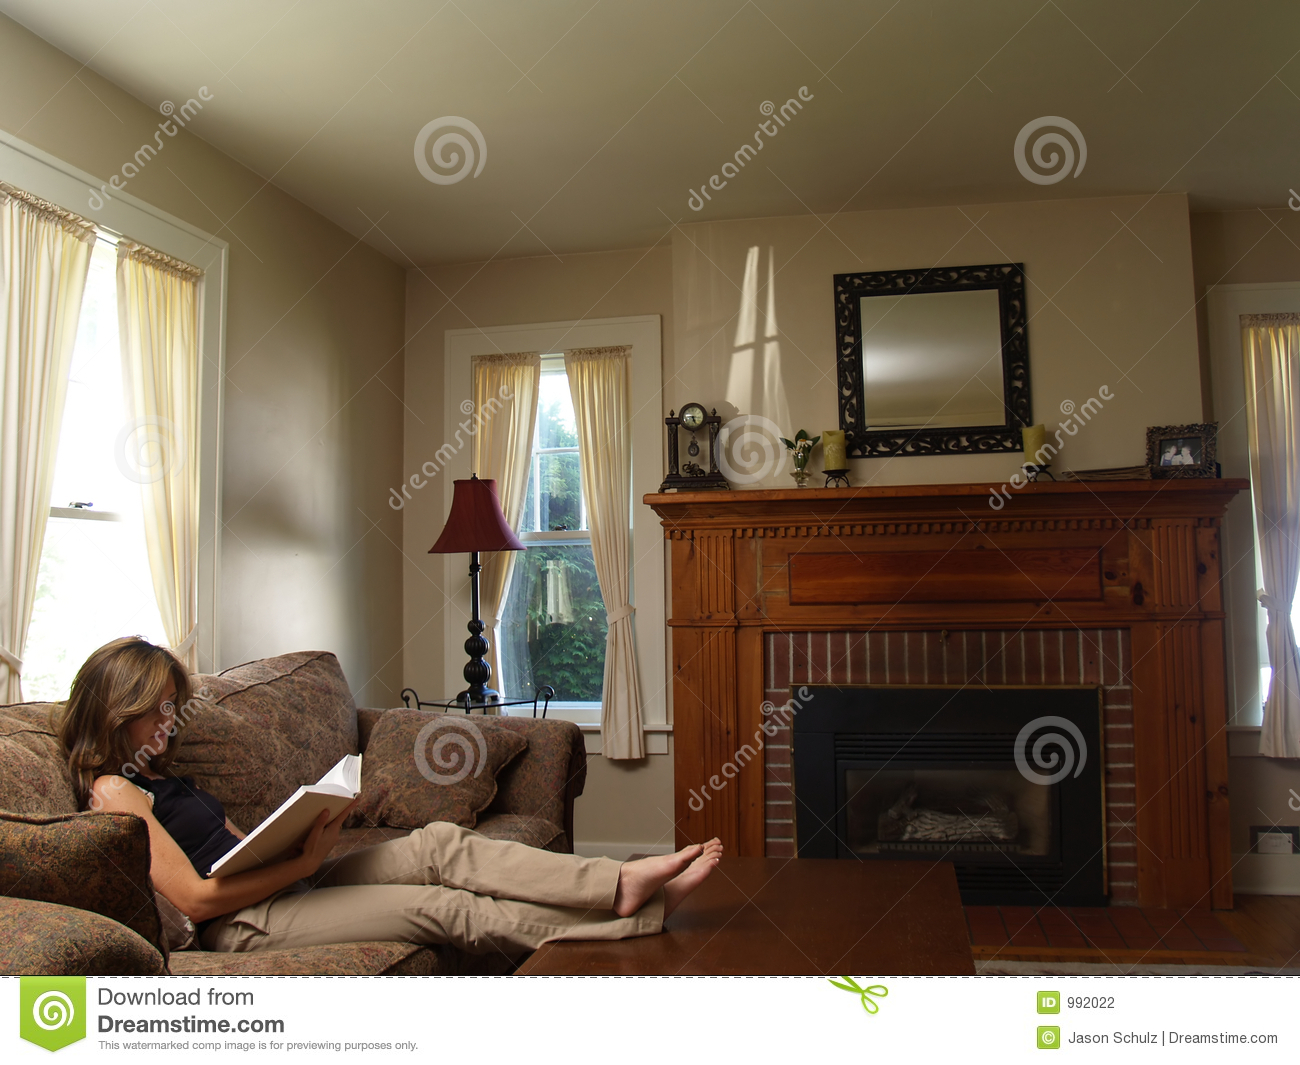 Young woman reading, relaxed